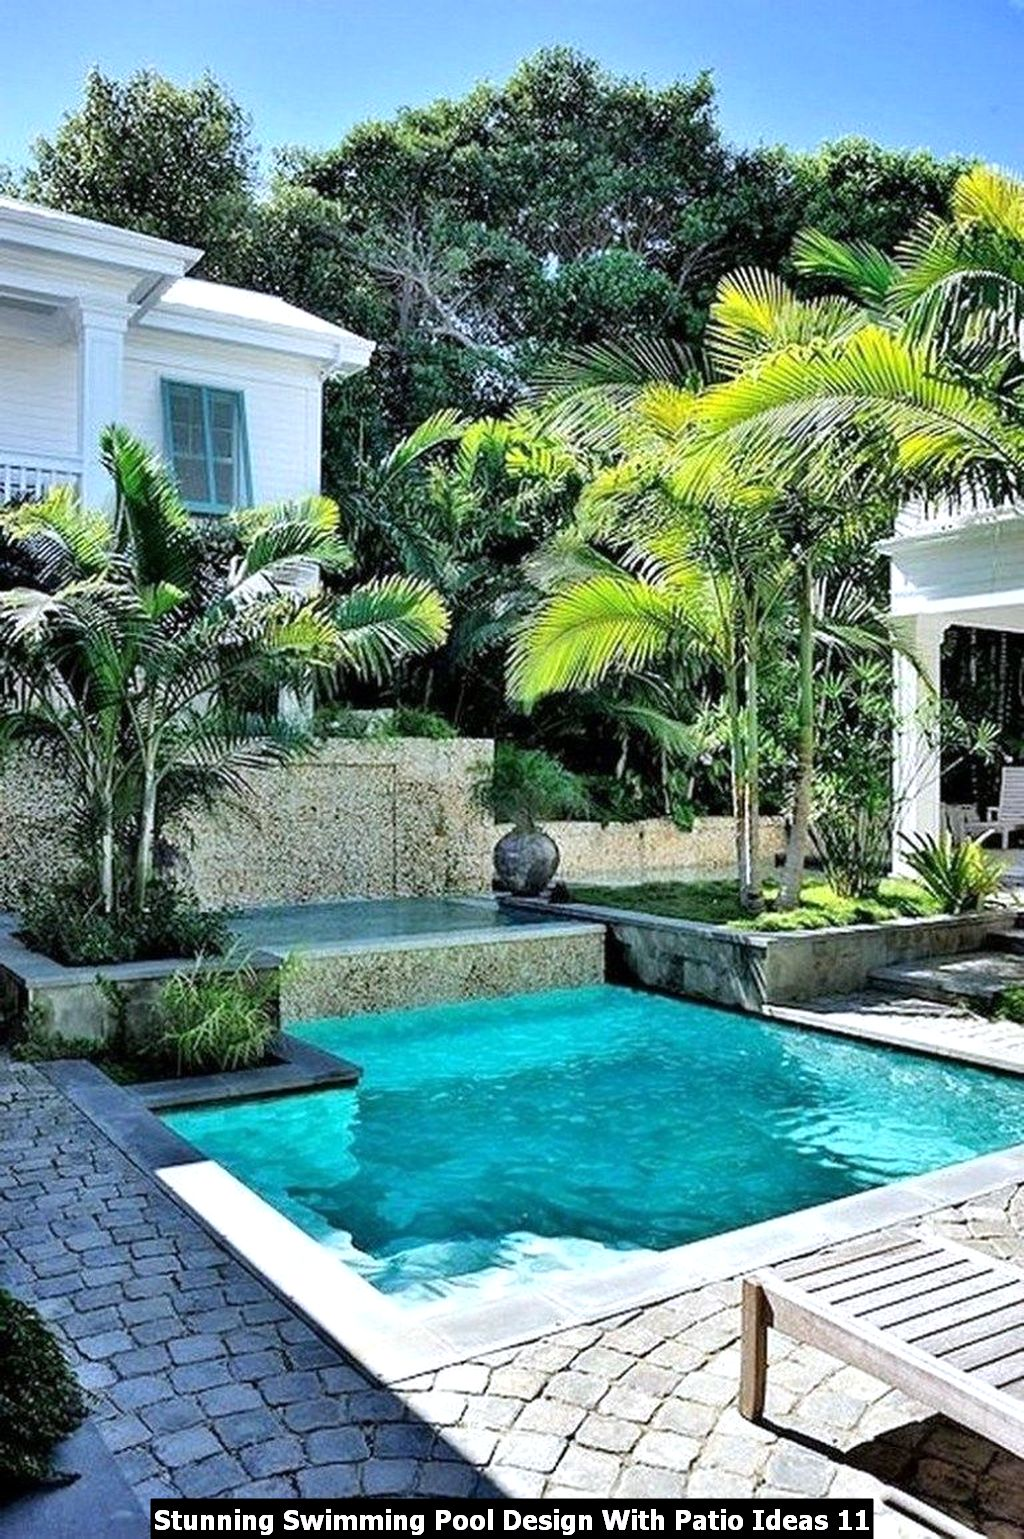 Stunning Swimming Pool Design With Patio Ideas 11